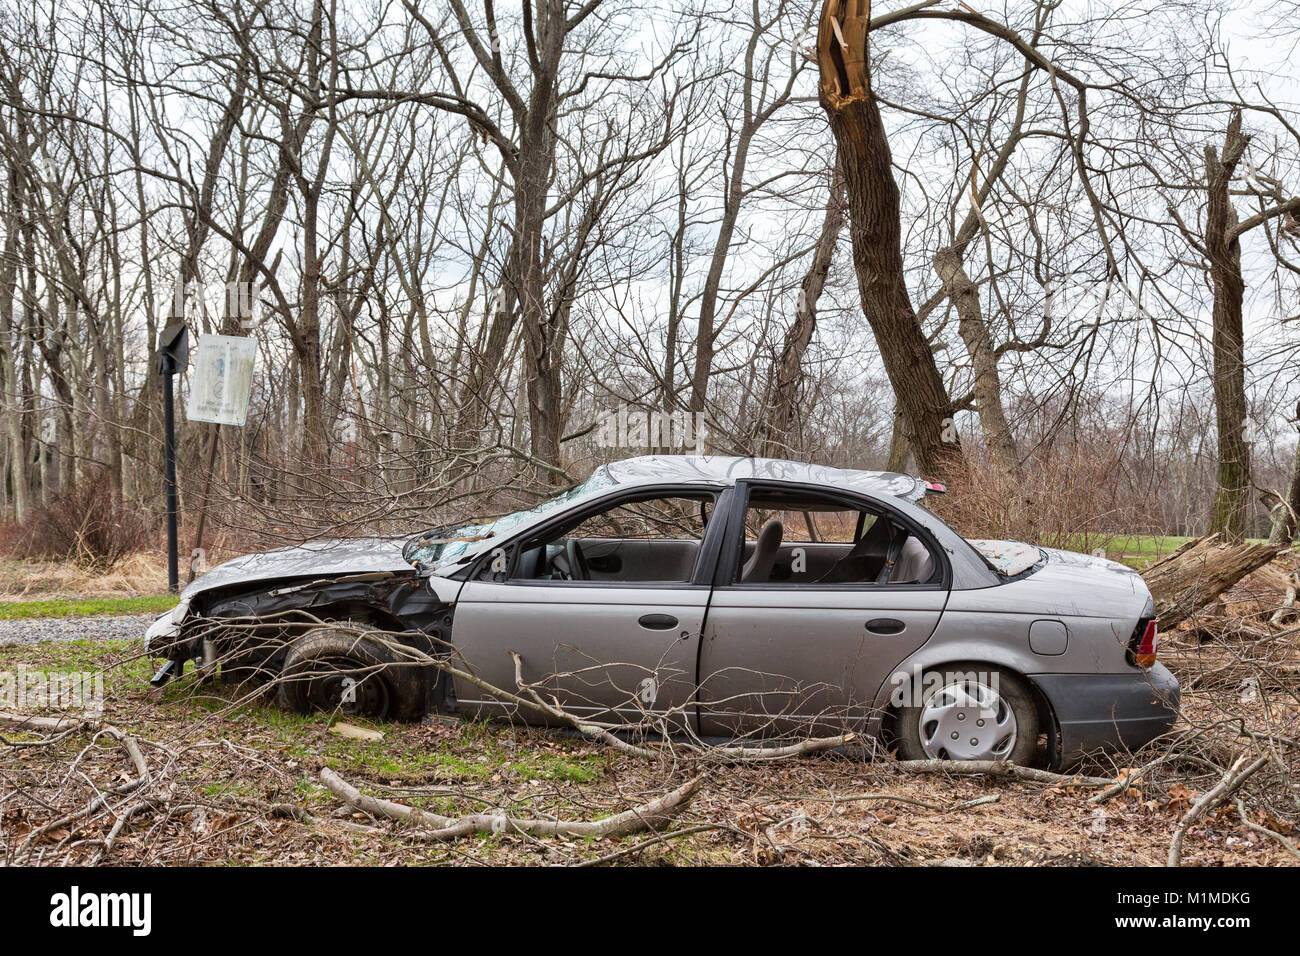 An abandoned car that was wrecked in an accident - Stock Image